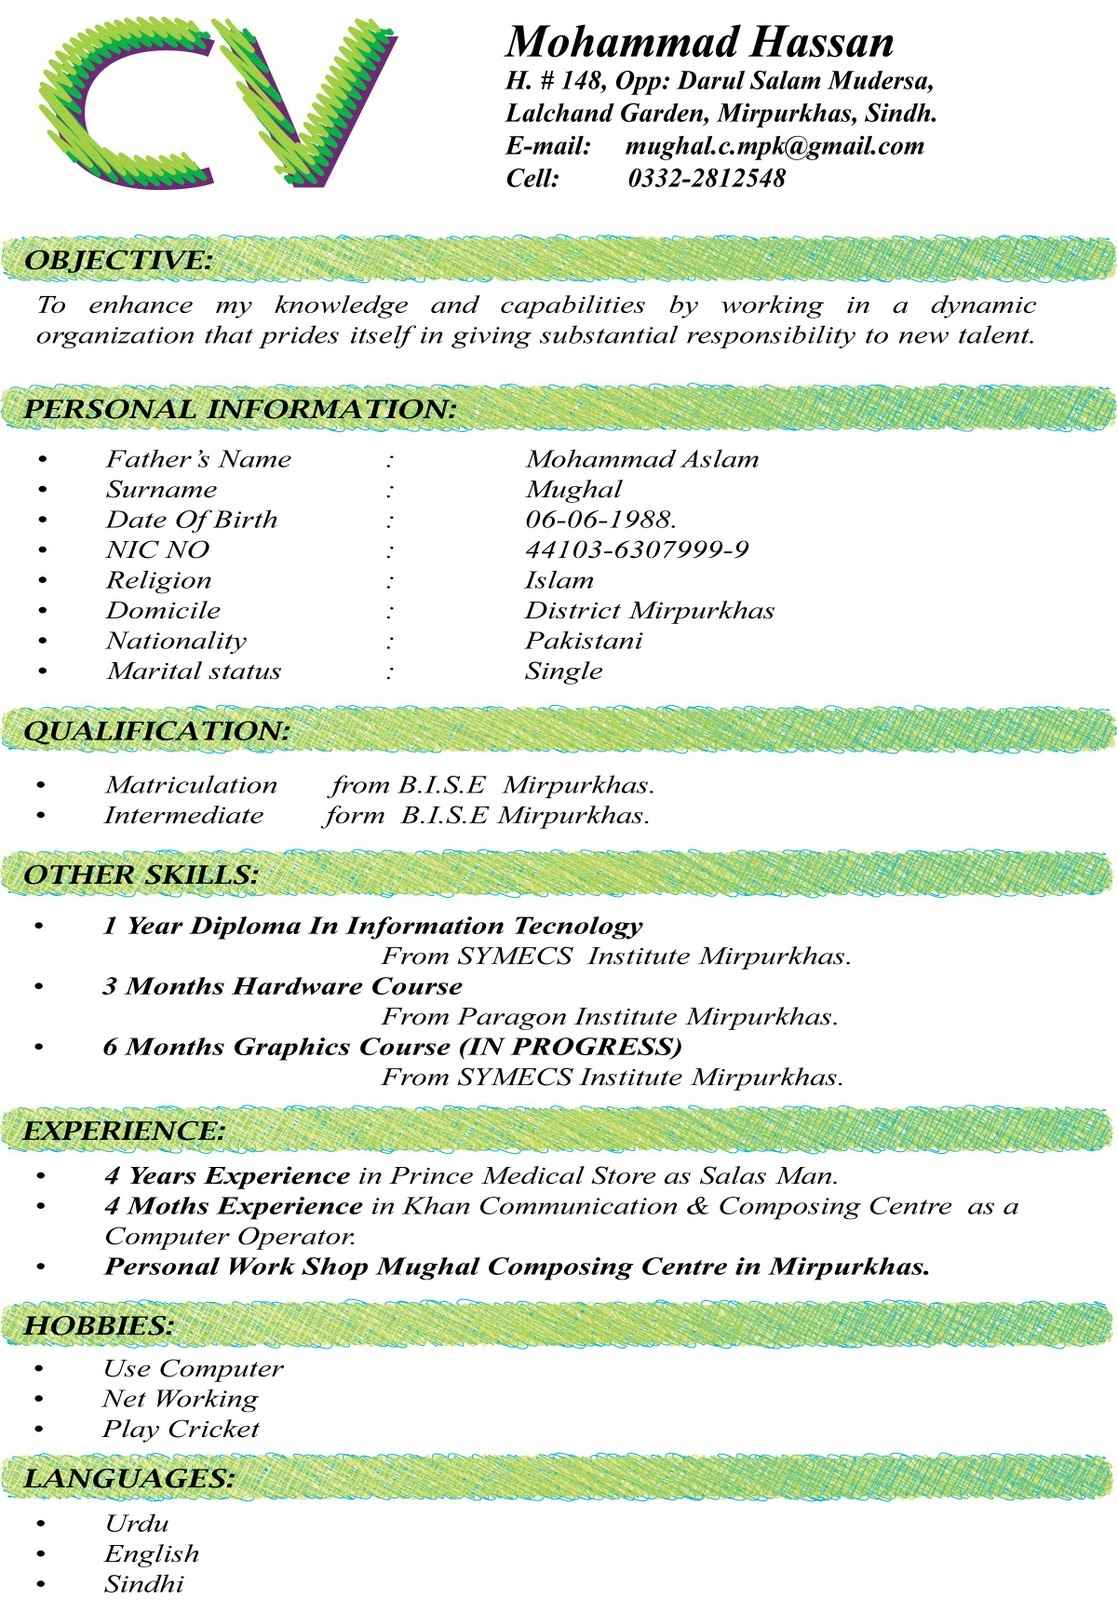 cv pattern - Cv Samples Download Pakistan